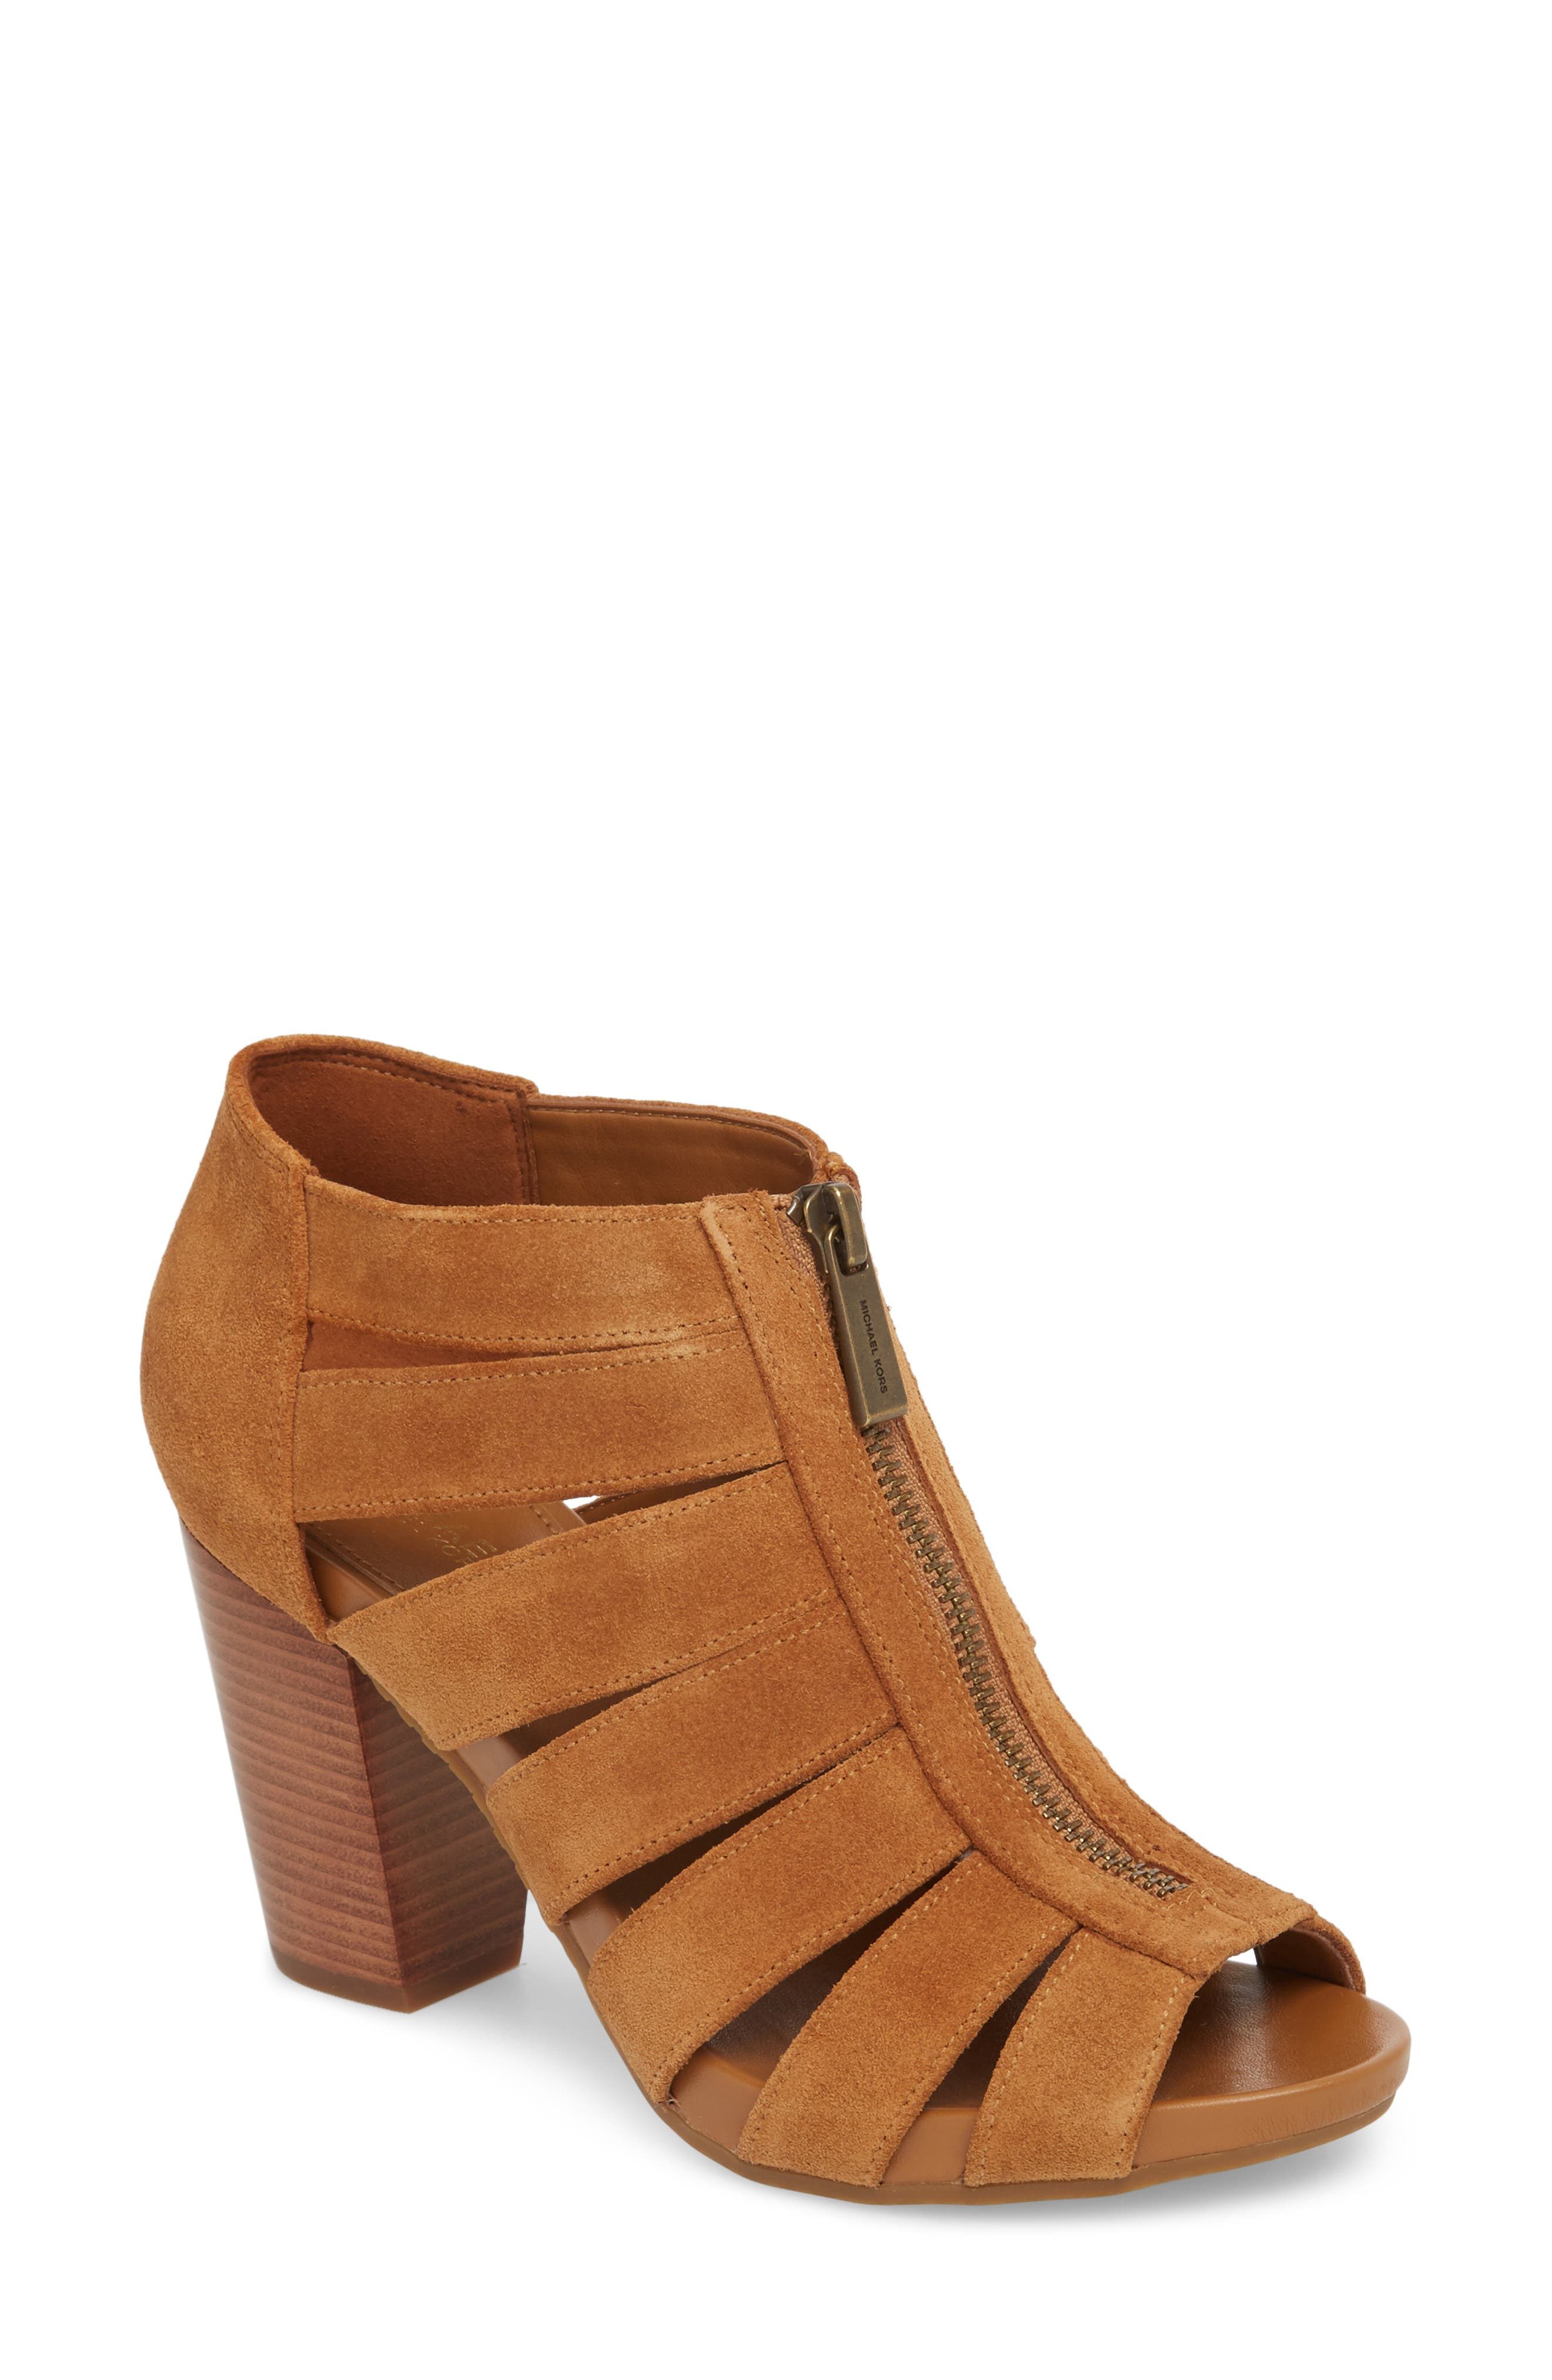 Sherry Cage Bootie,                             Main thumbnail 1, color,                             Acorn Suede